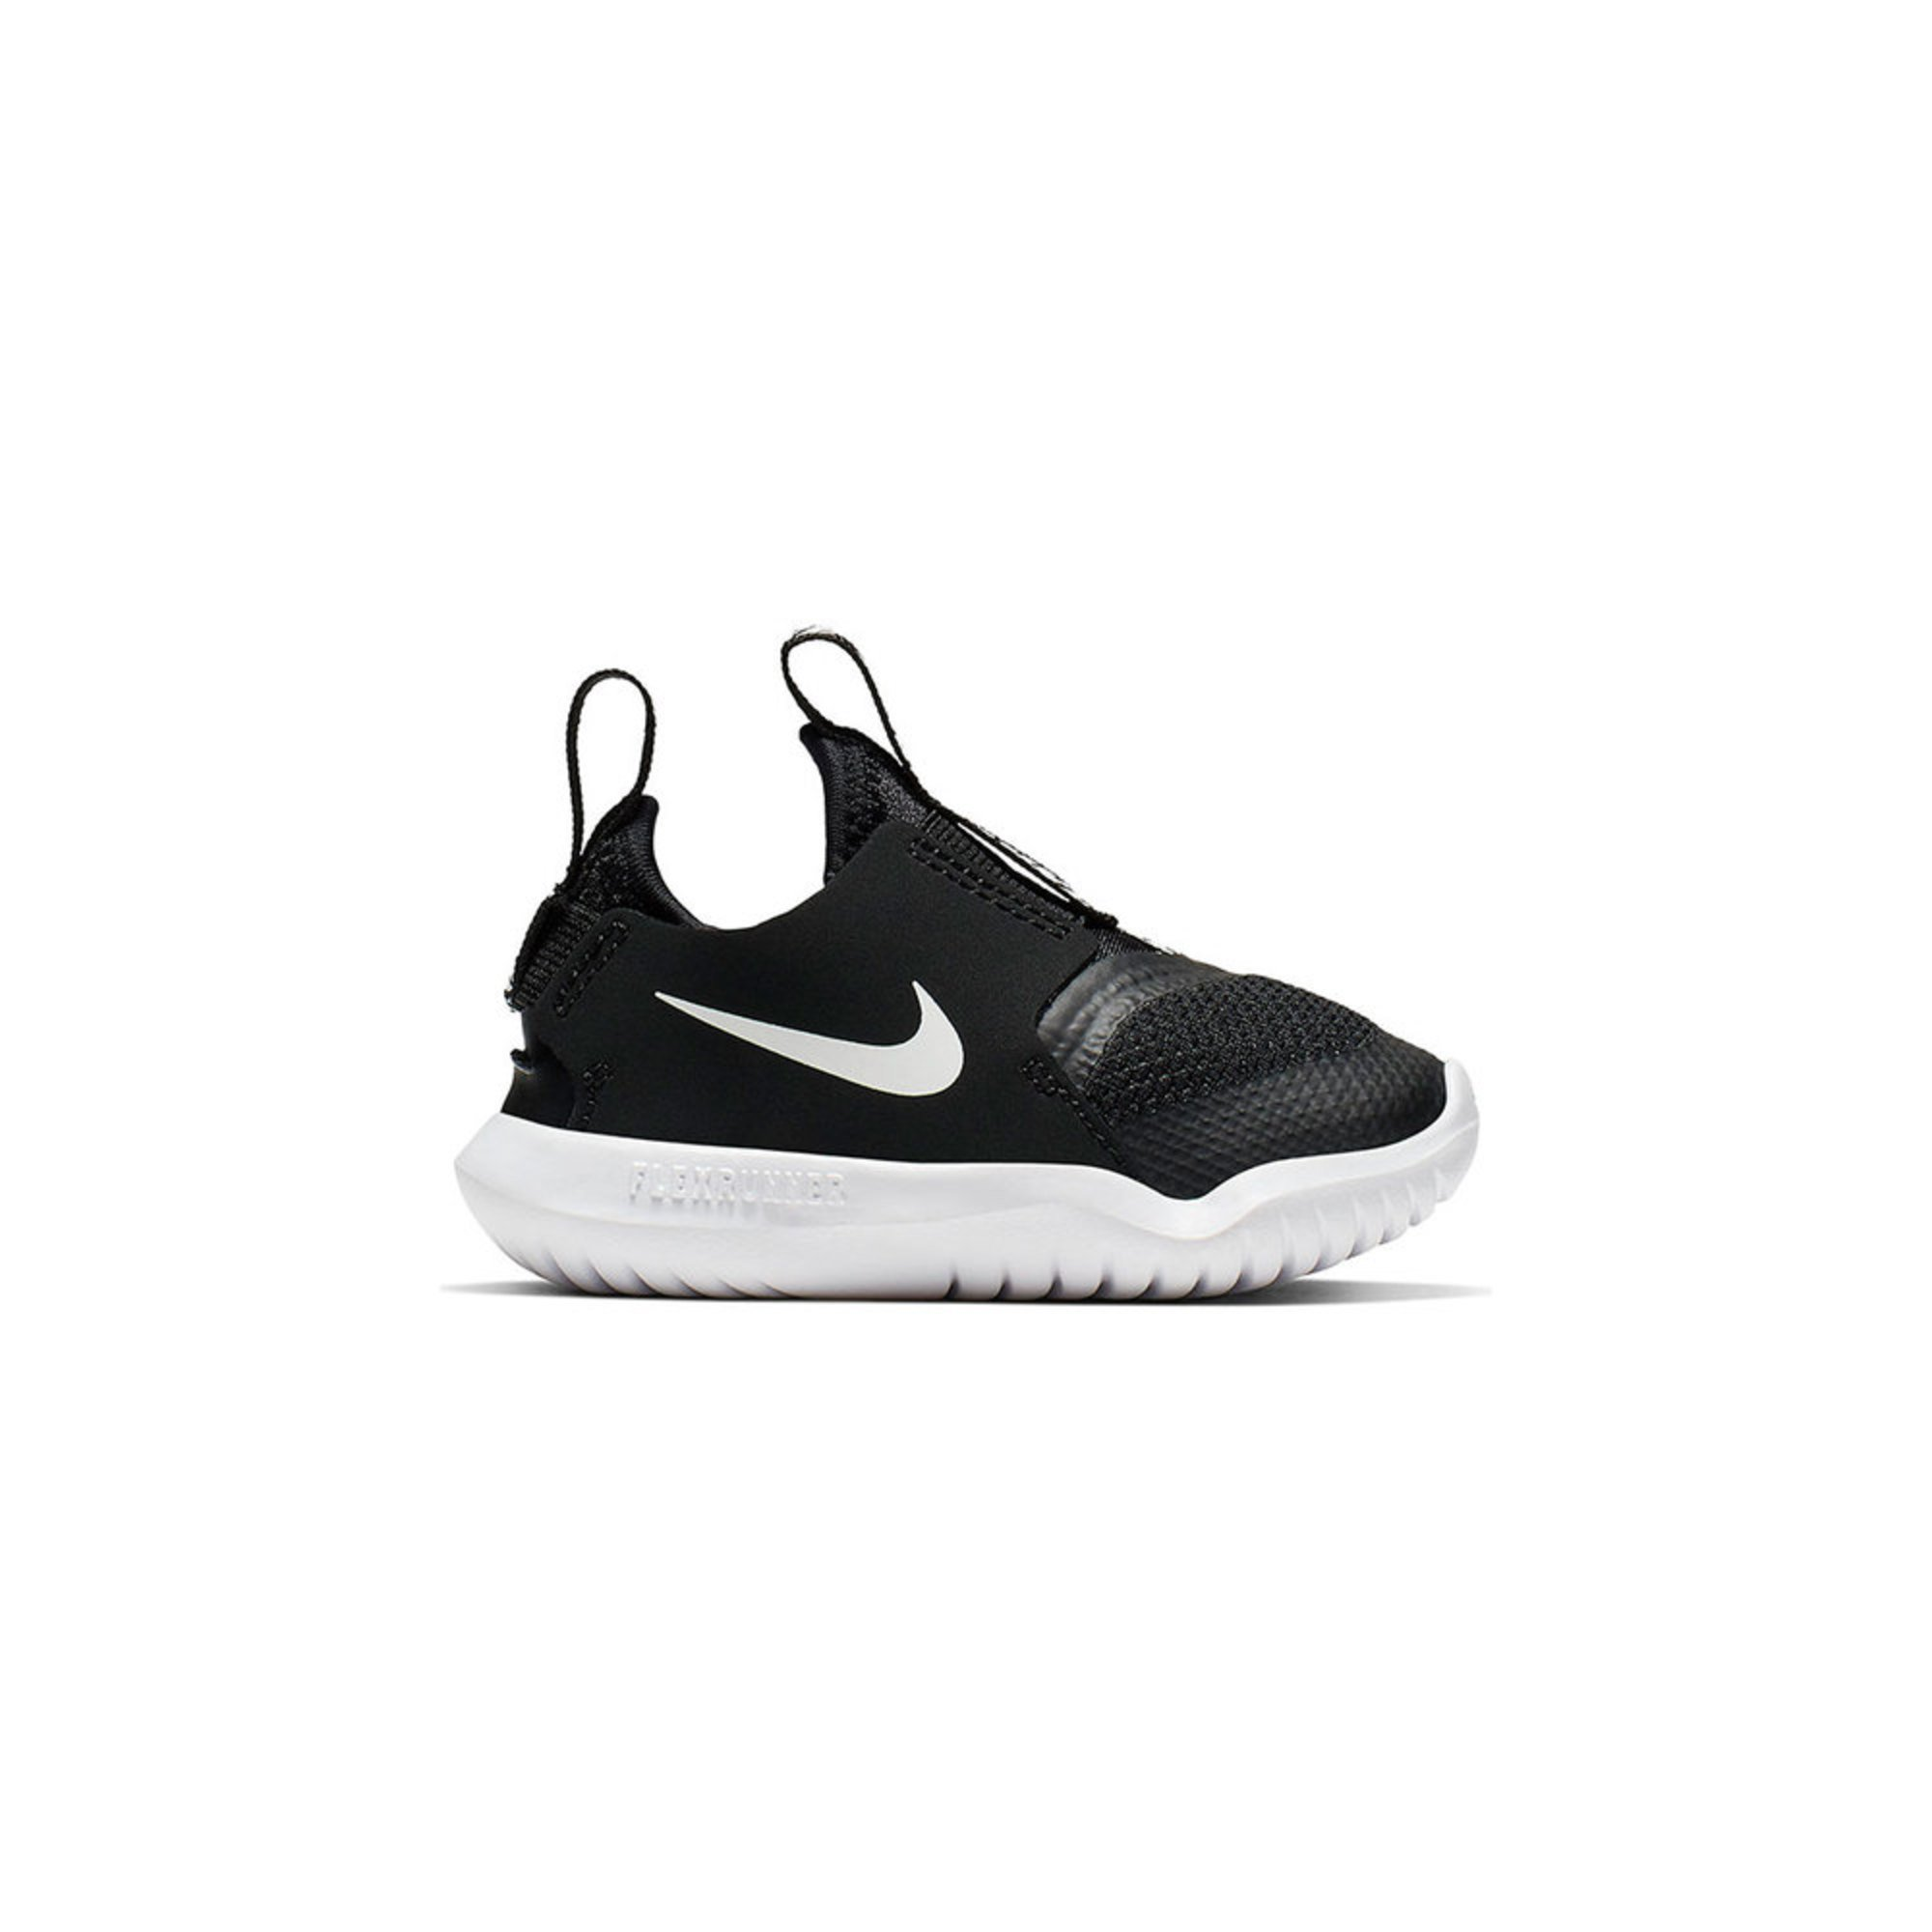 879cde19b68 Nike. Nike Boys Flex Runner Training Shoe (Infant Toddler)